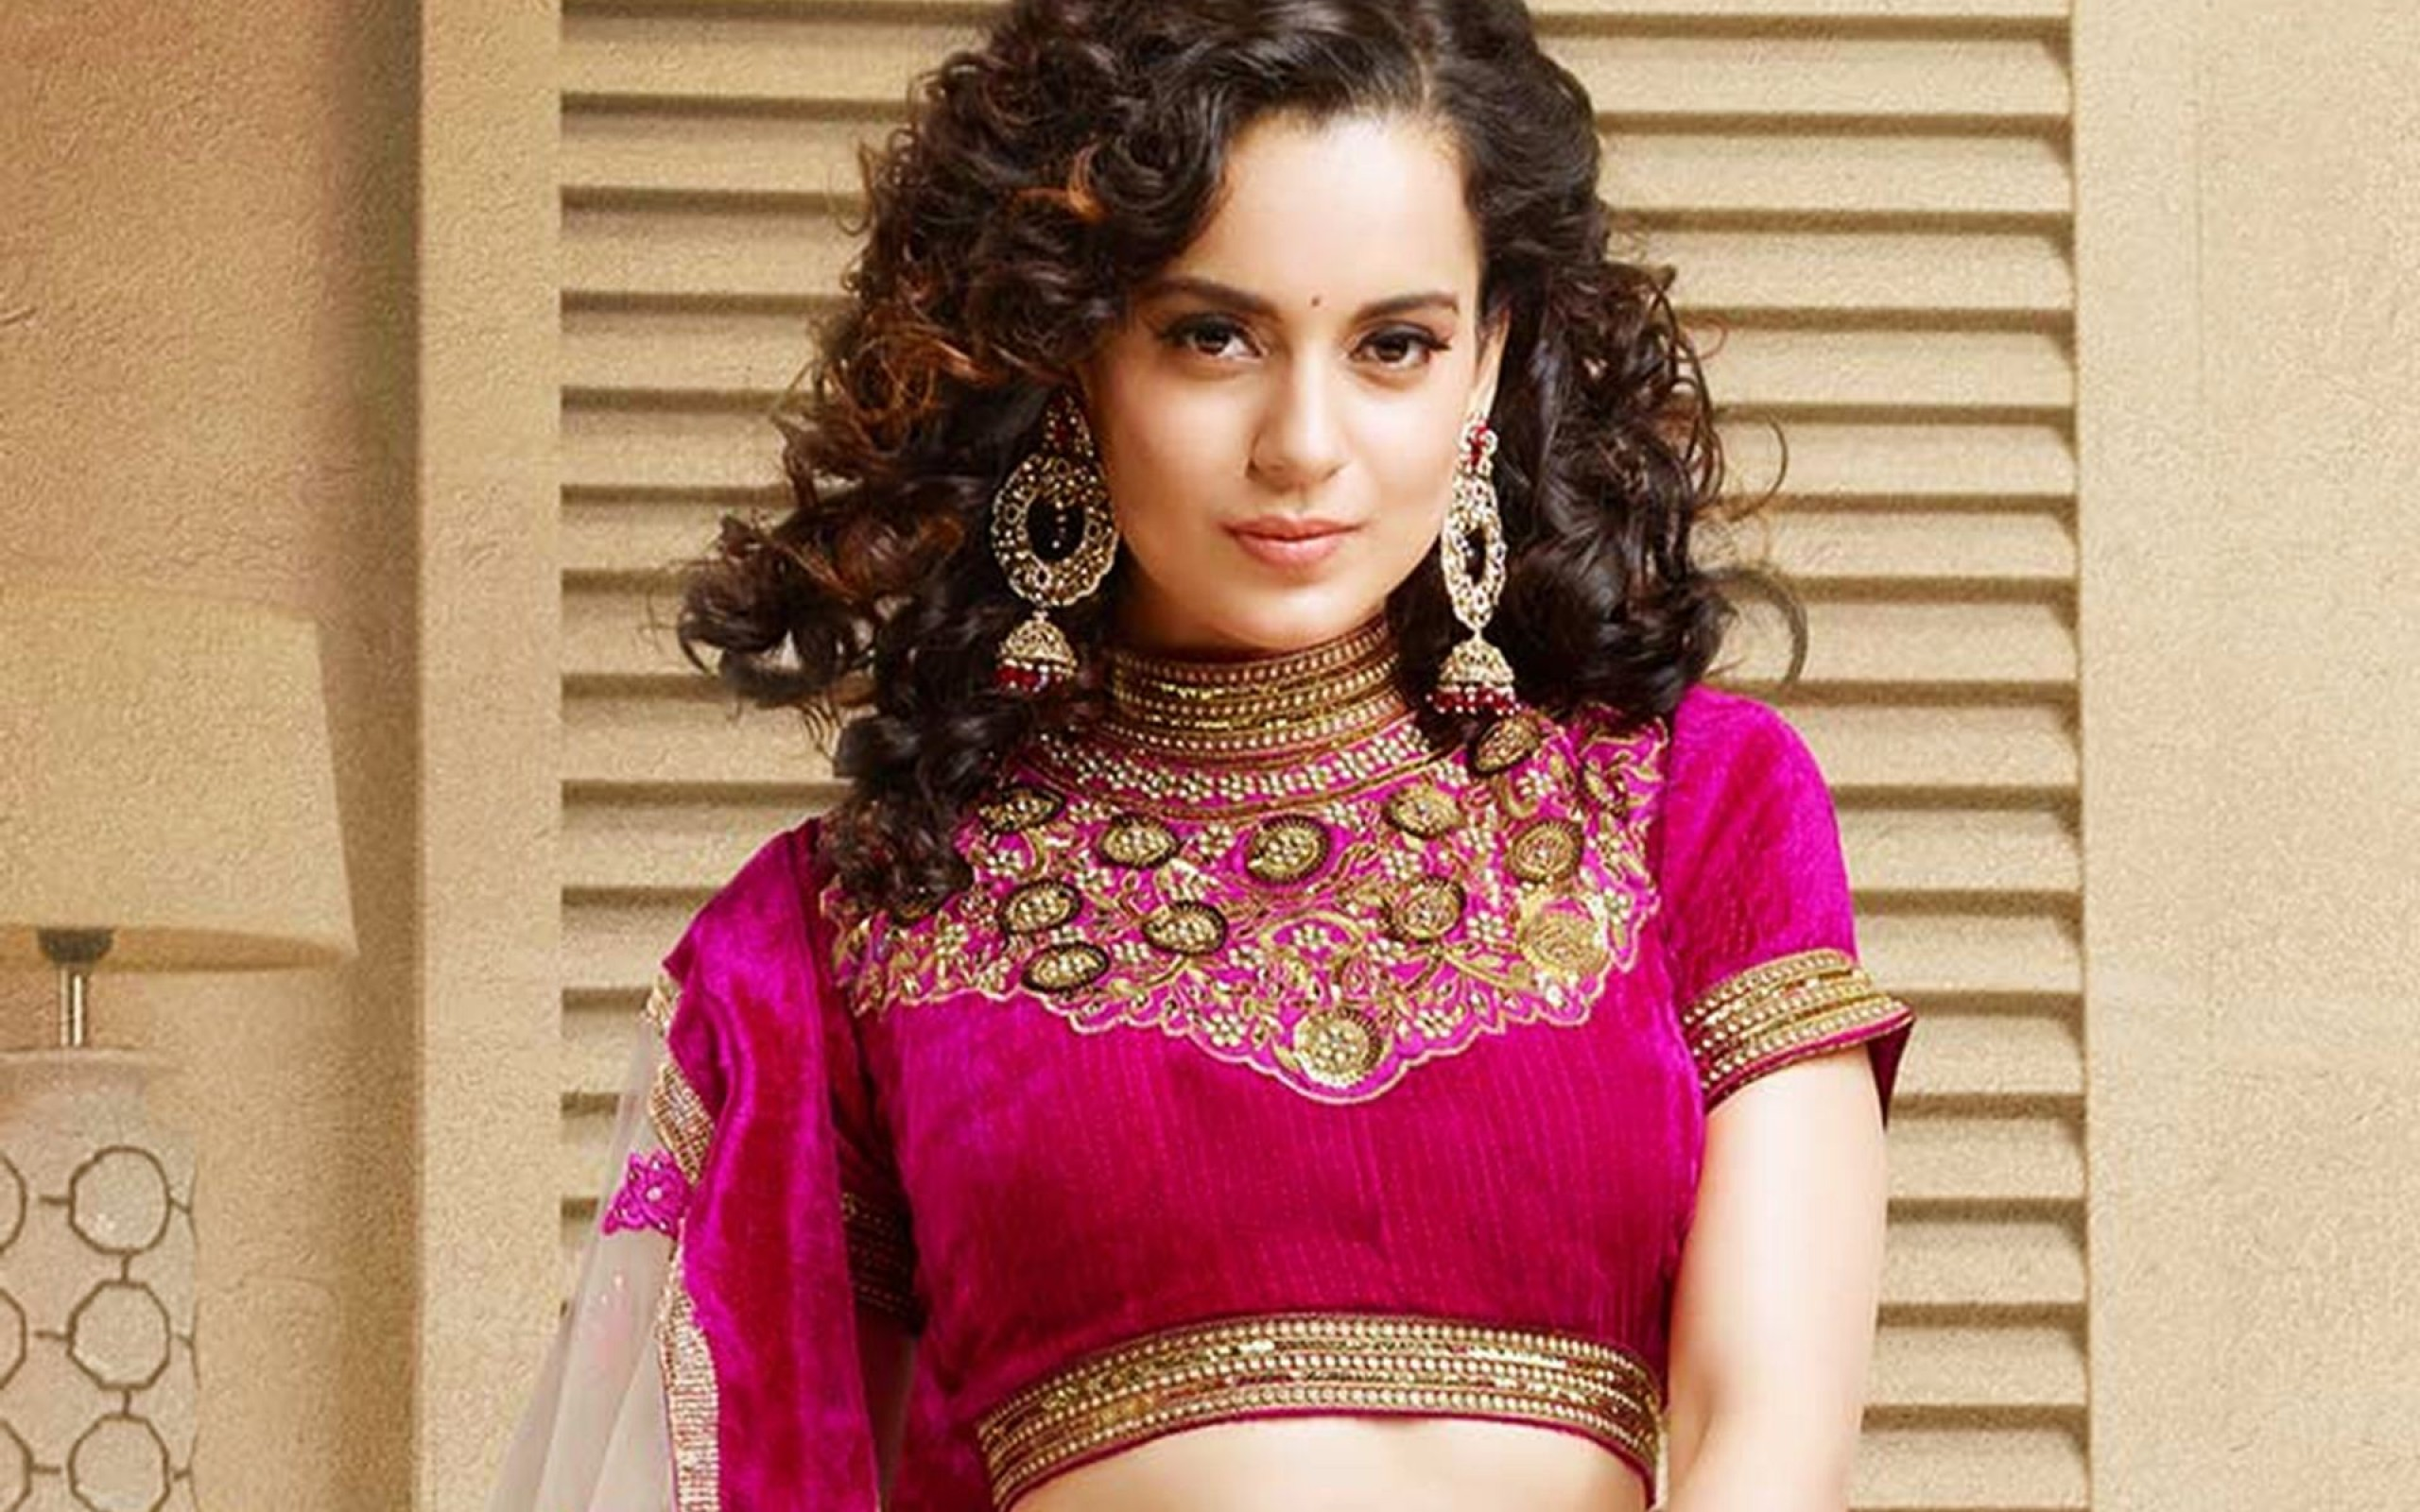 Kangana ranaut red dress actress wallpaper